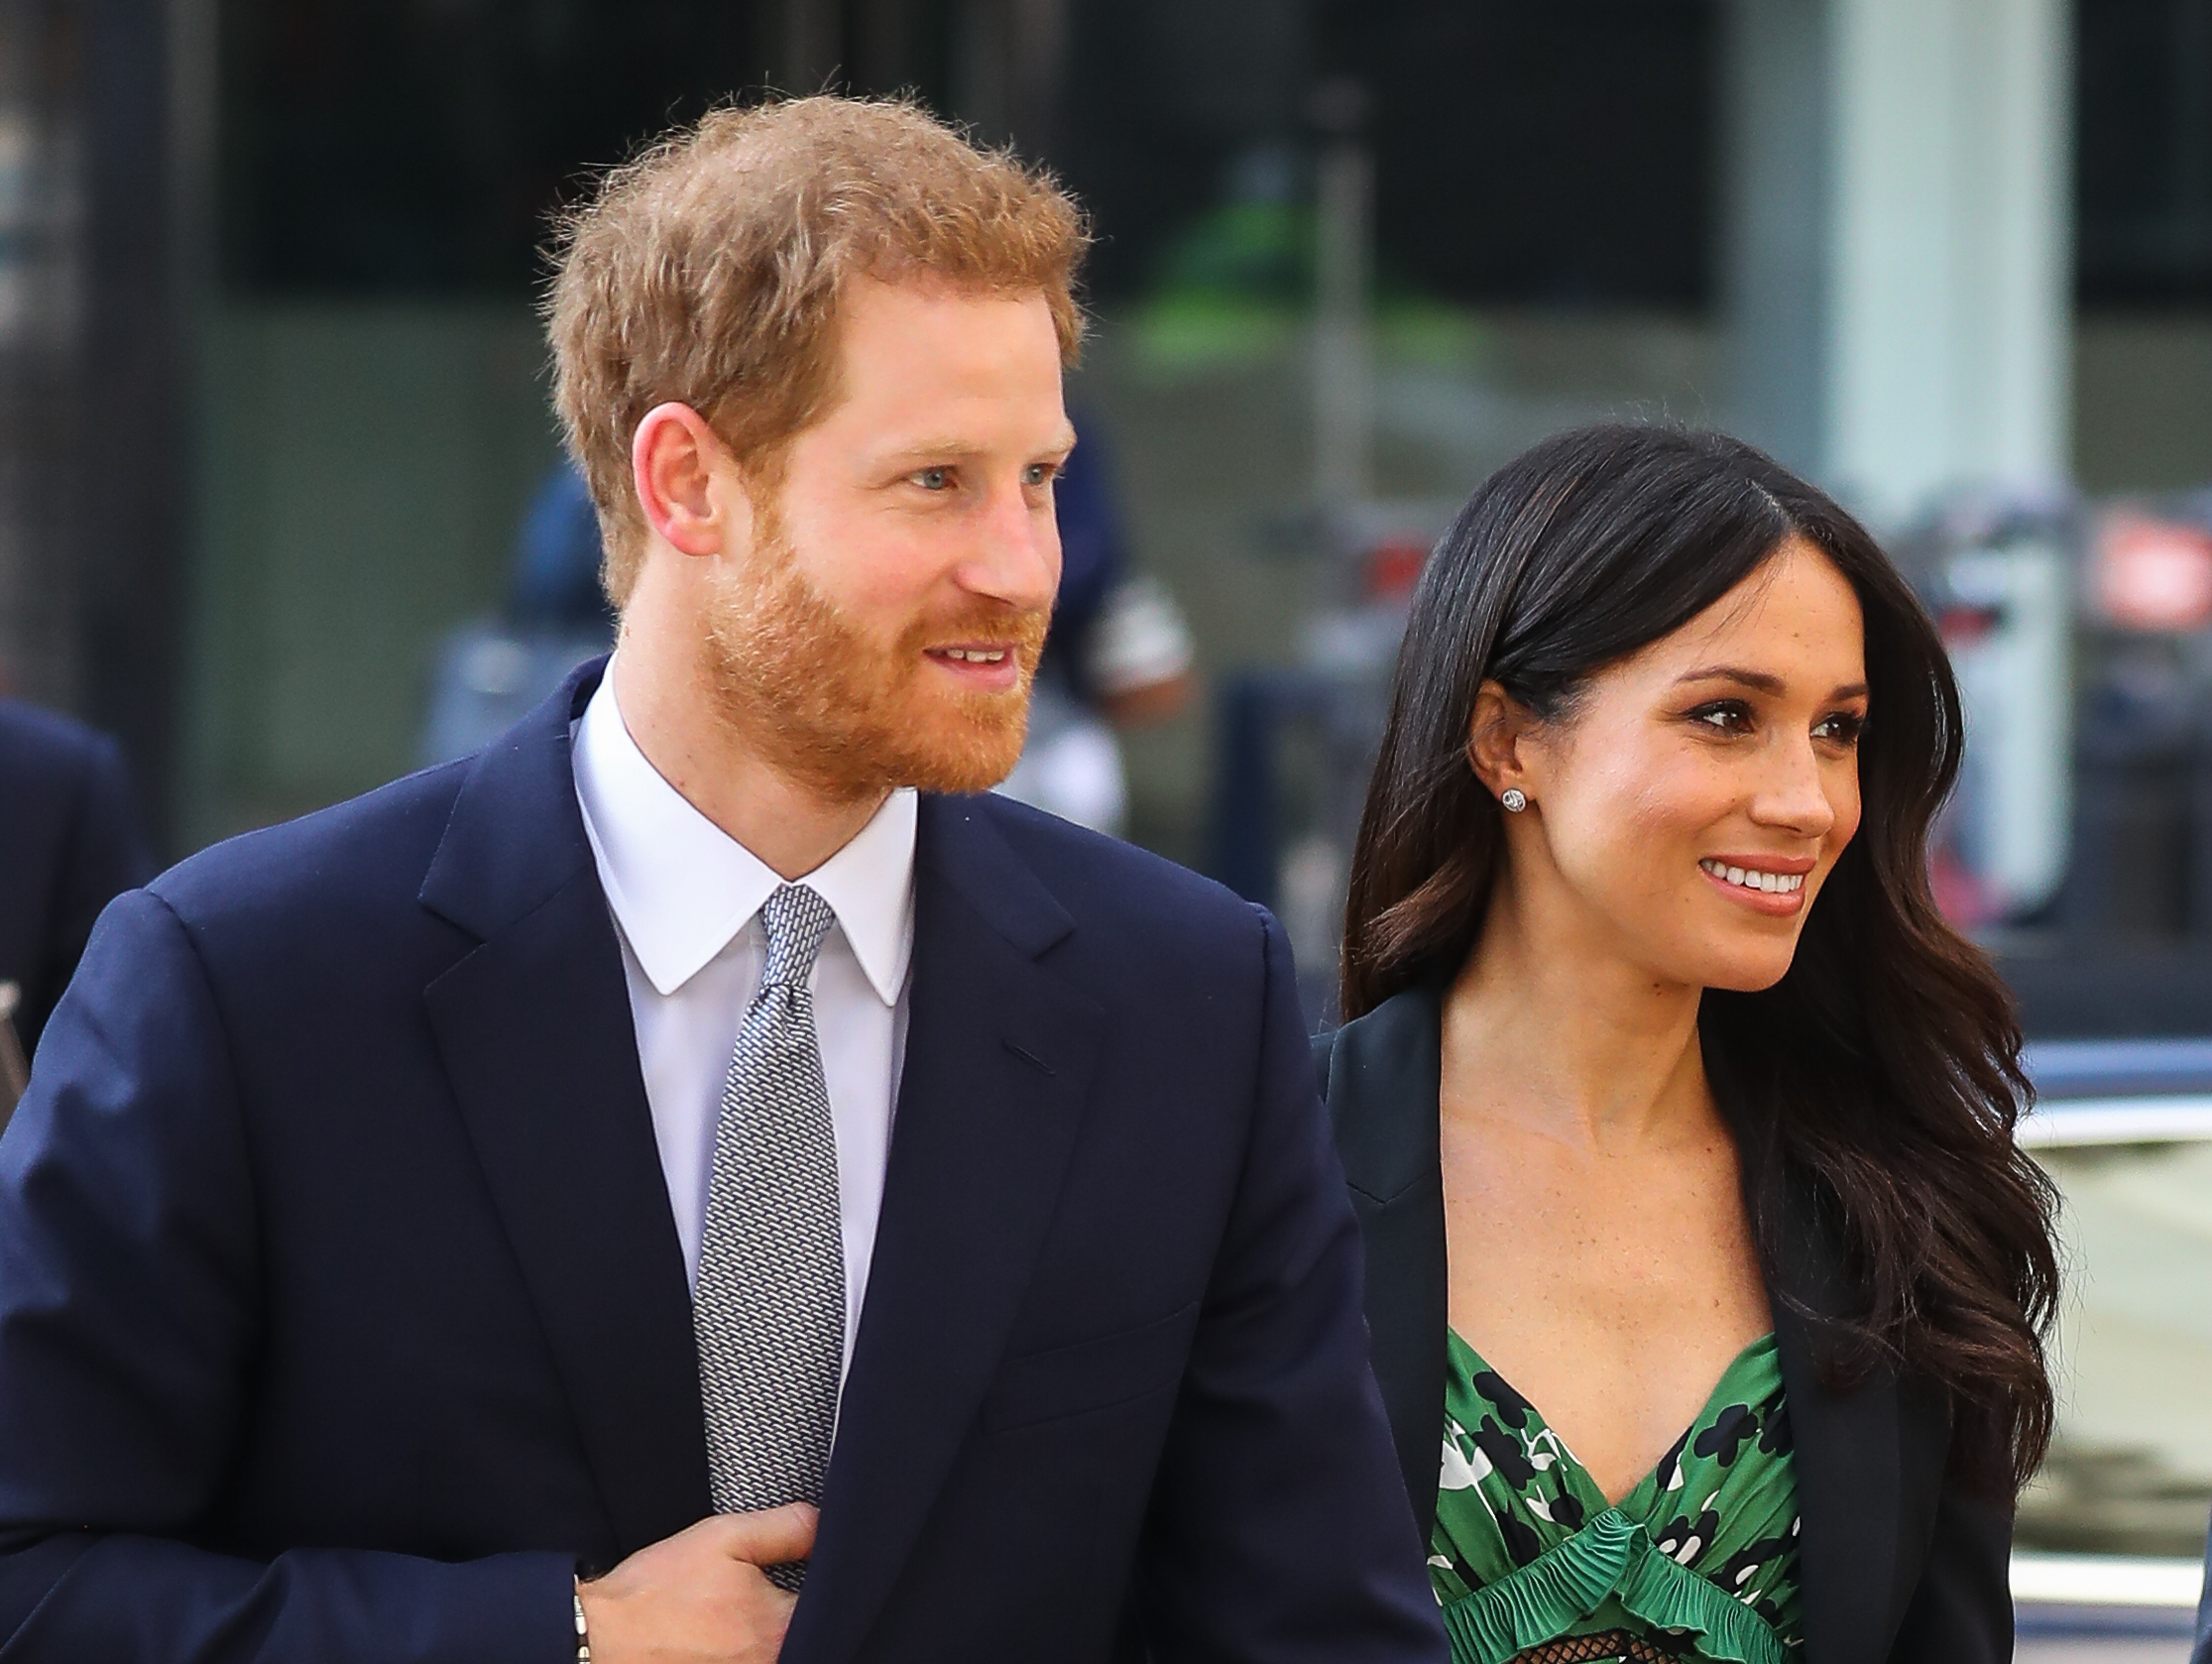 Atualmente, Meghan Markle e Harry moram no Frogmore Cottage, nos arredores do palácio de Windsor (Foto: WENN)